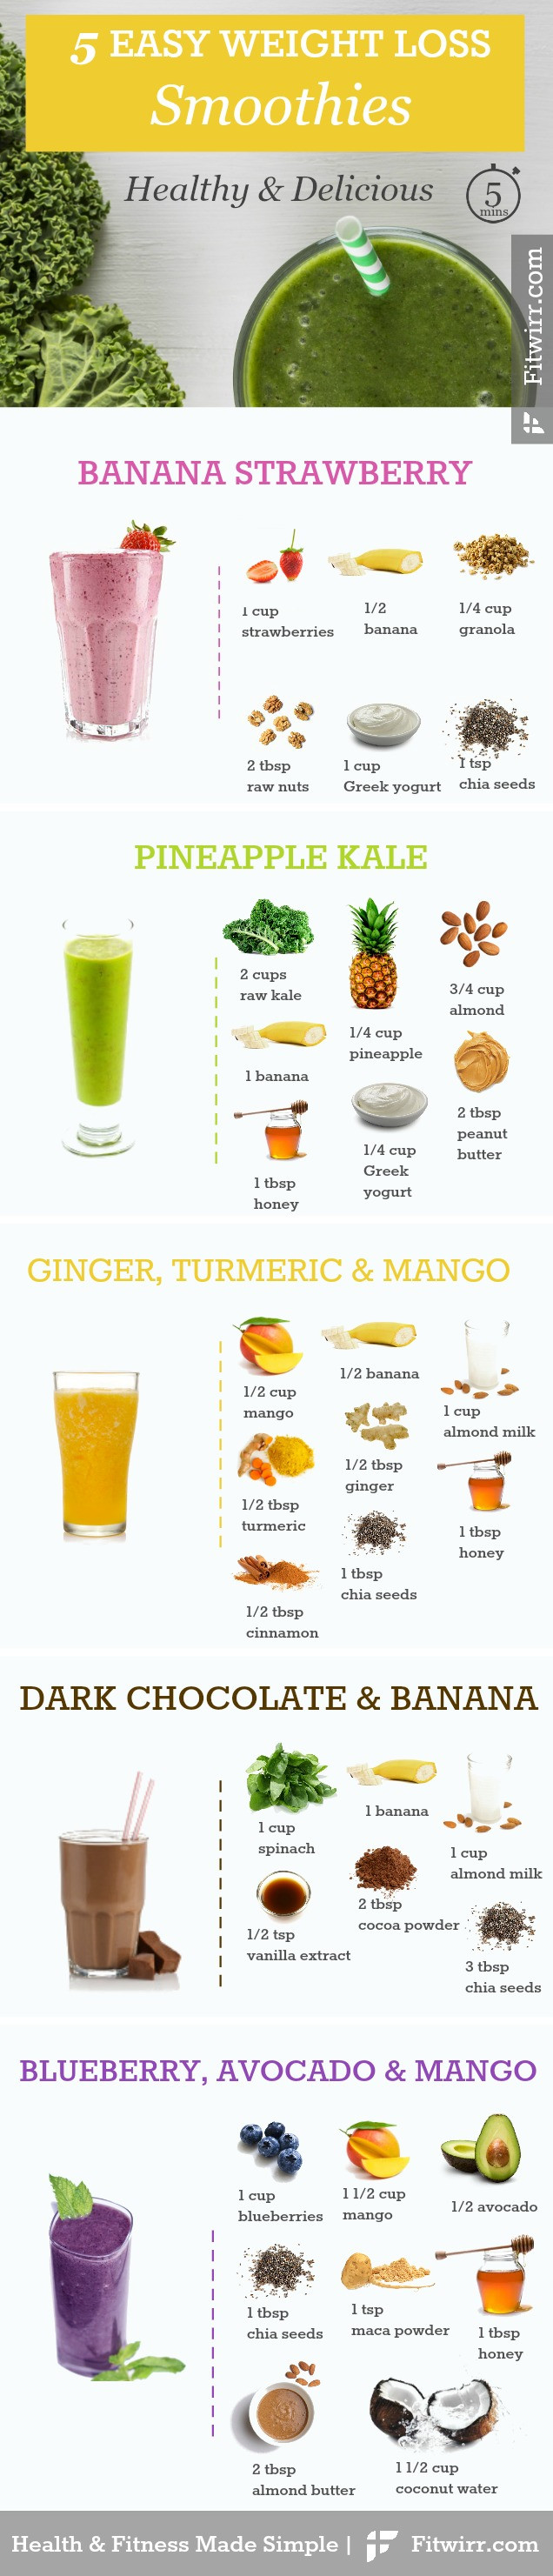 Simple Smoothie Recipes  5 Best Smoothie Recipes for Weight Loss